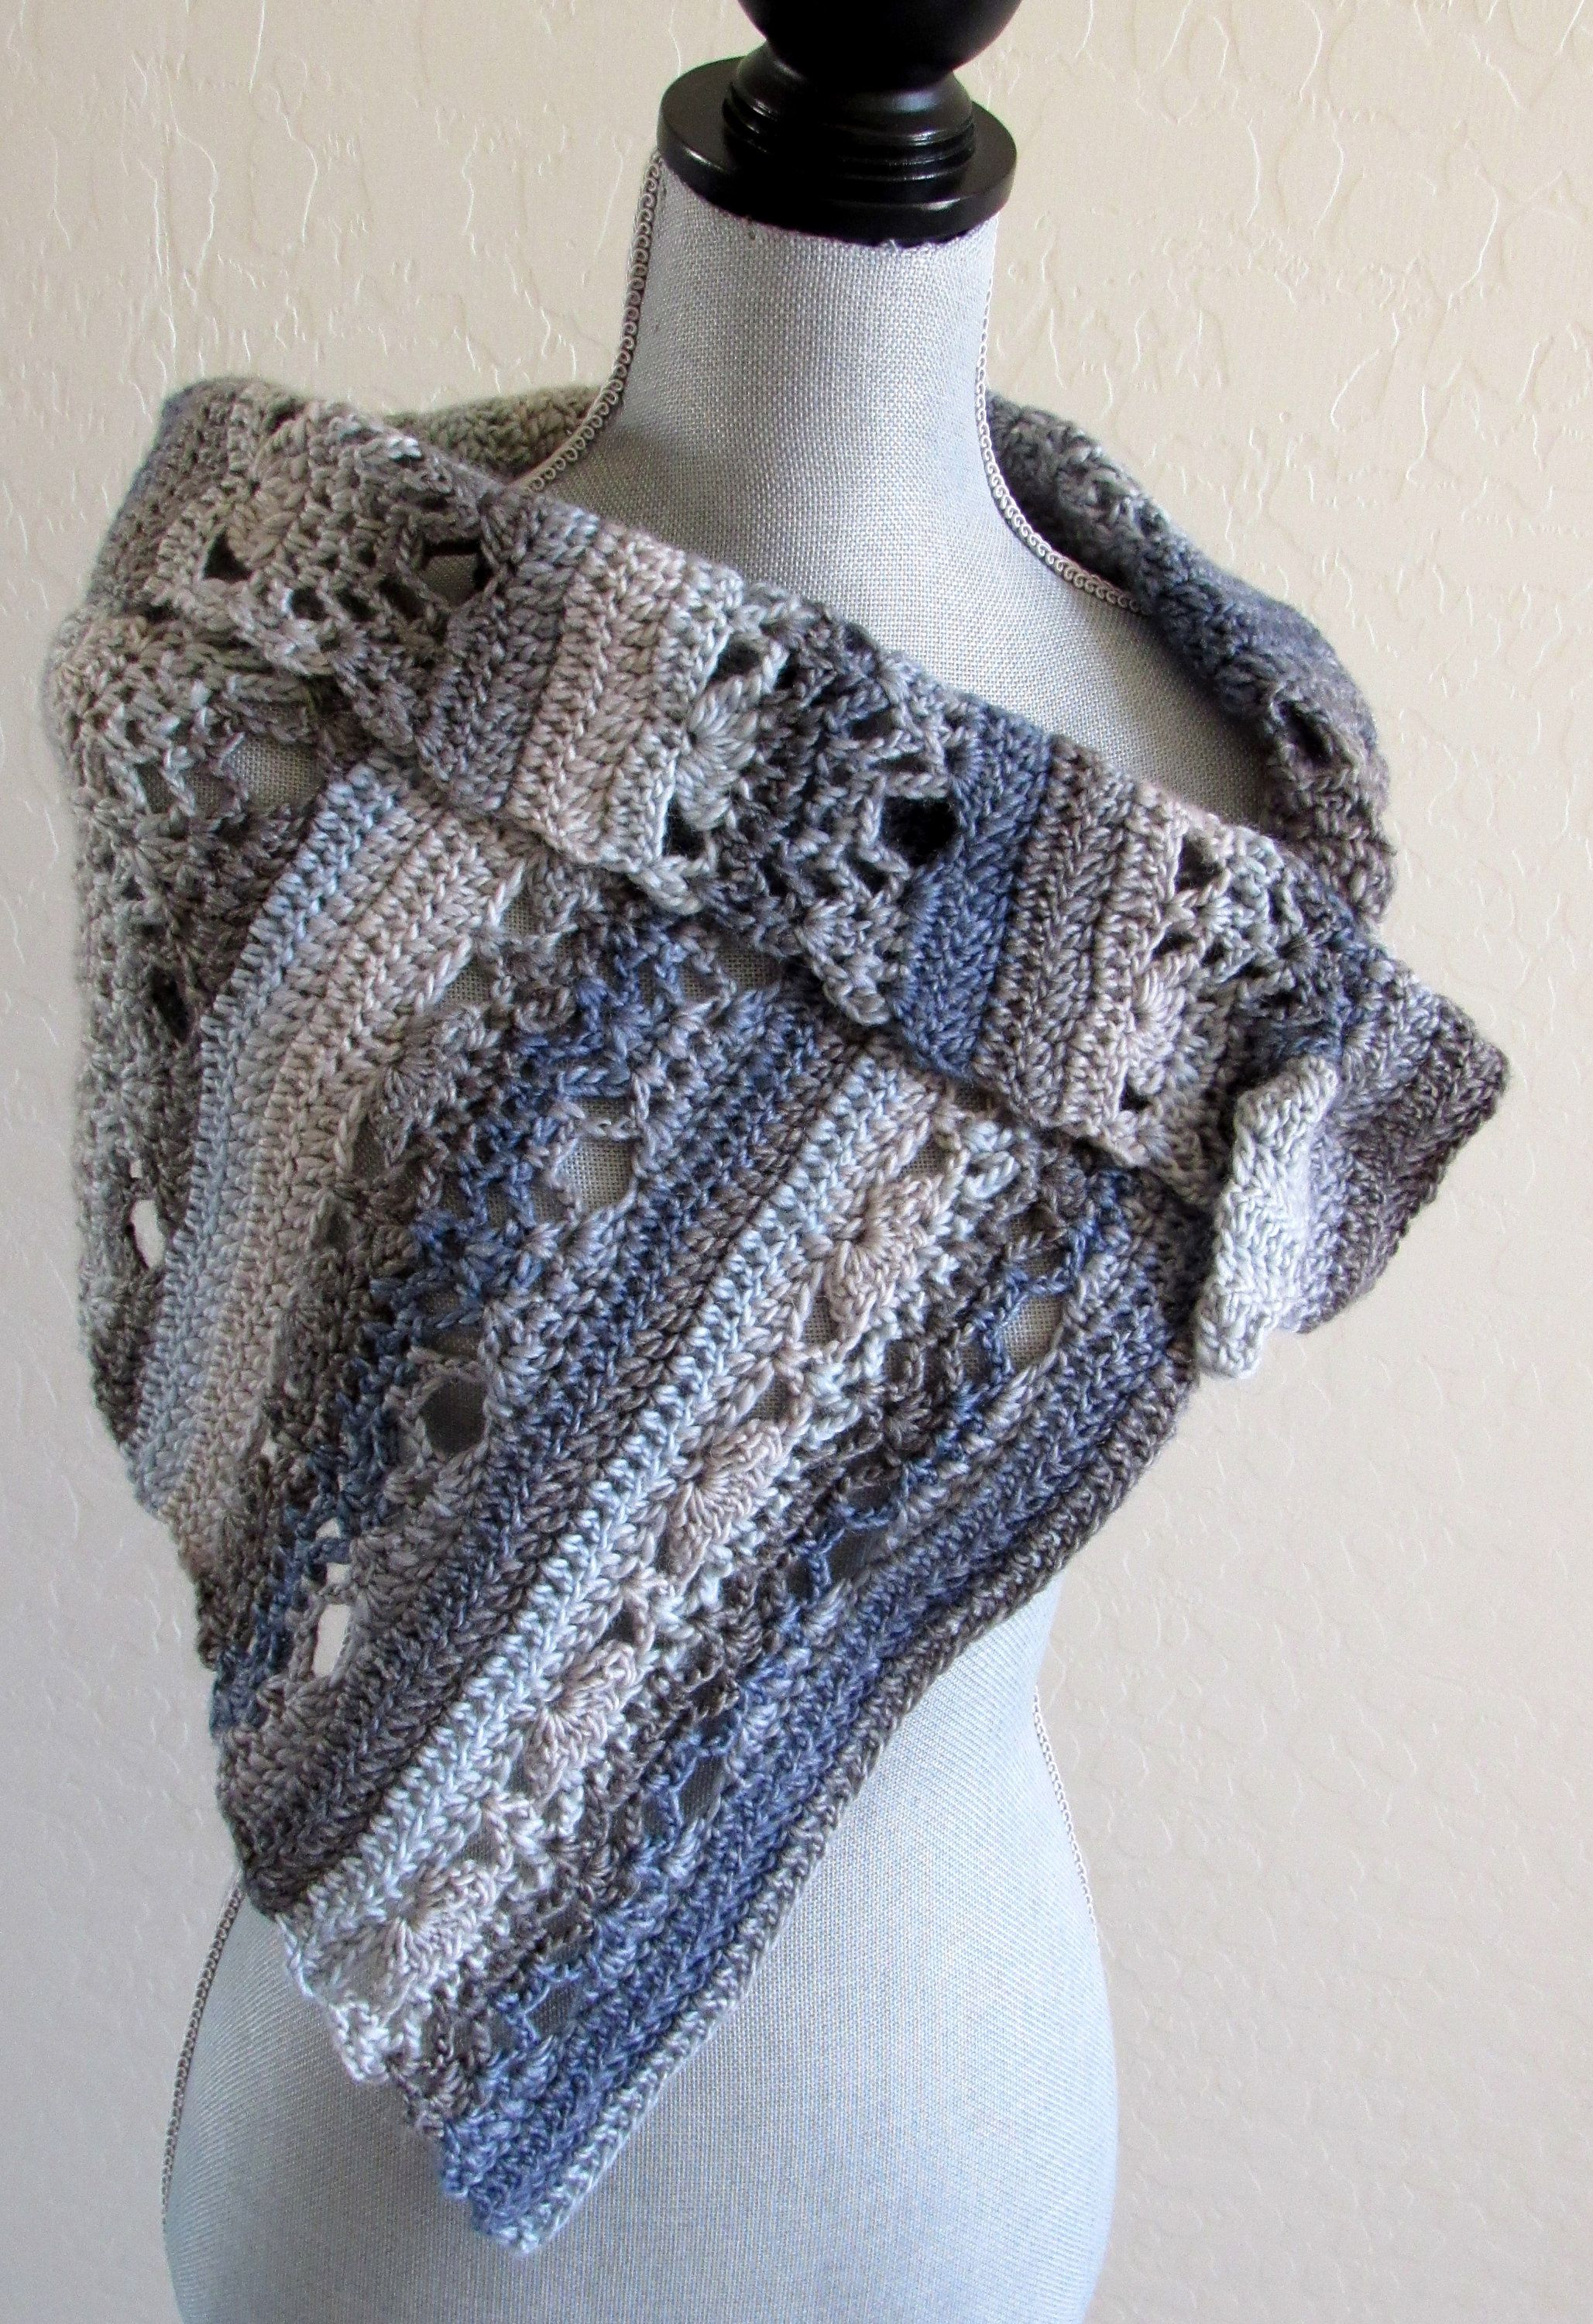 Photo of Crocheted Wrap and Scarf in Blue and Gray